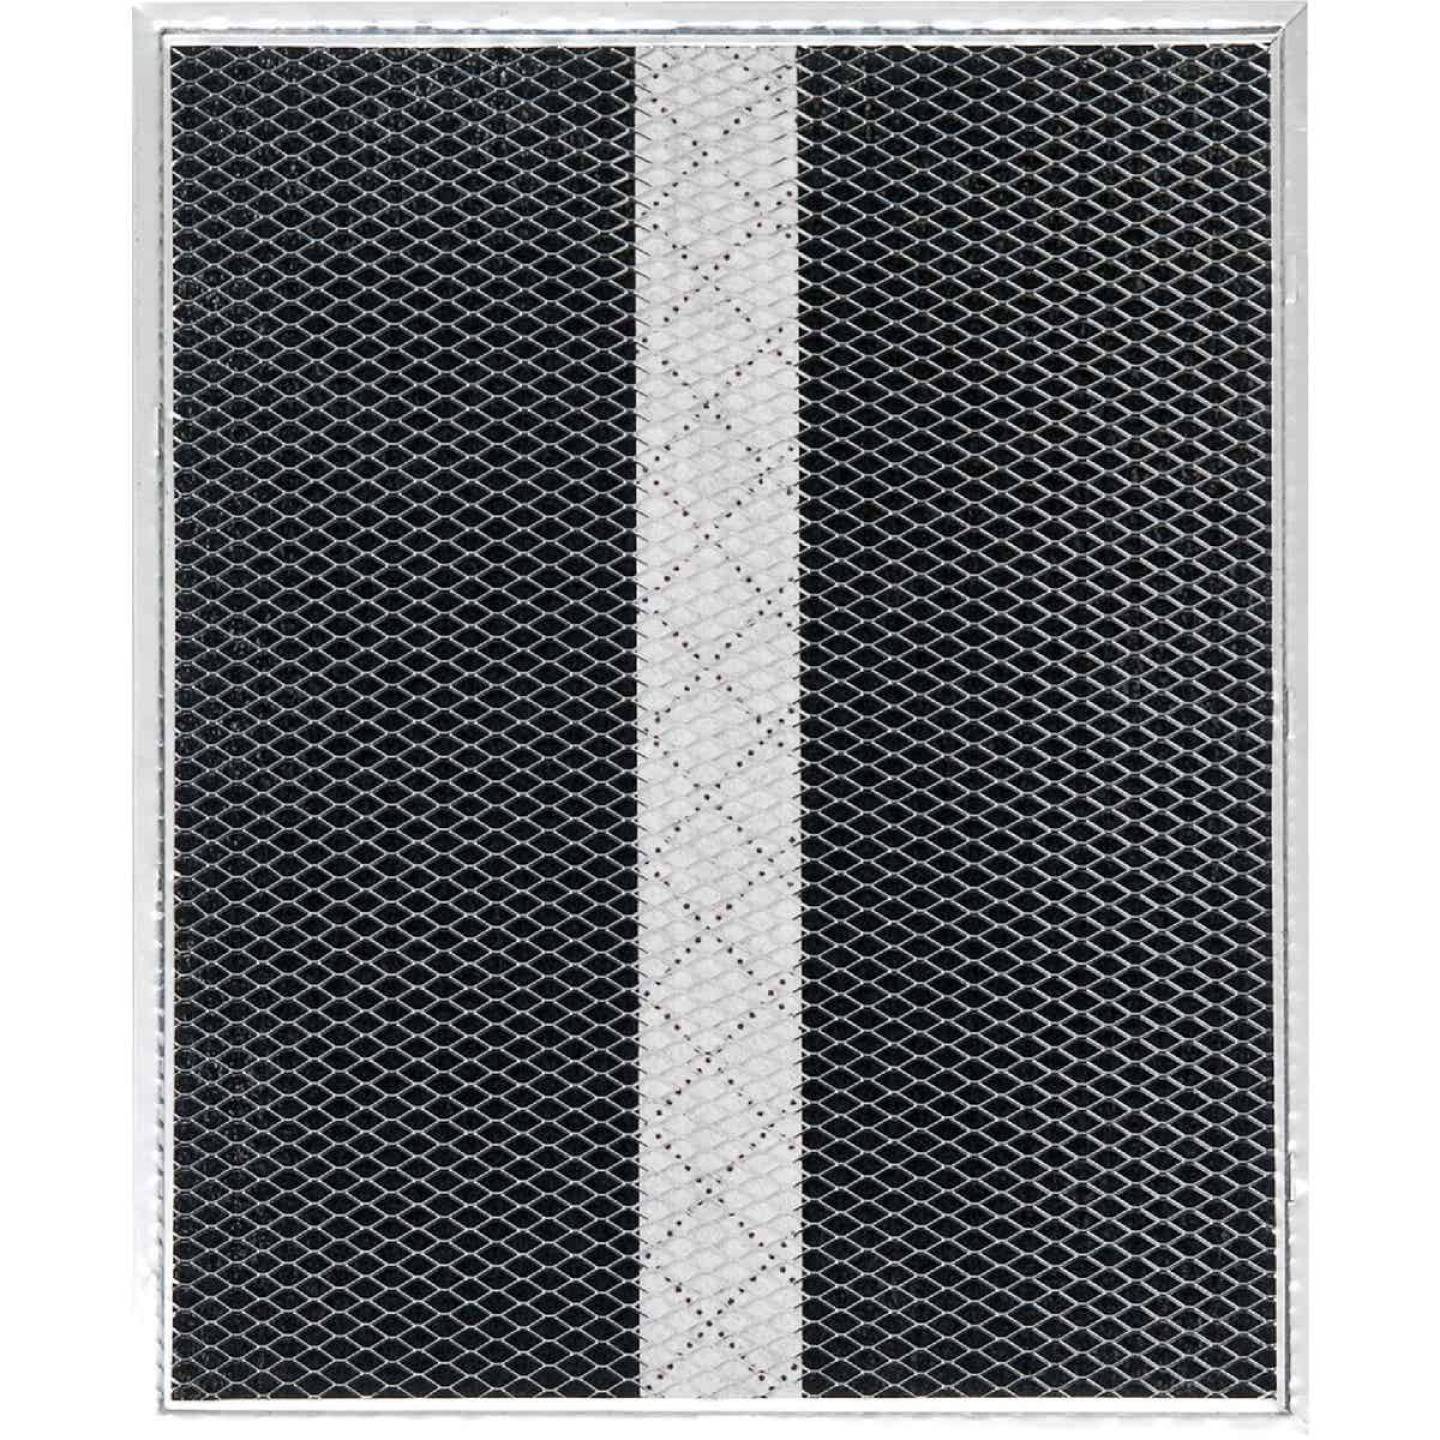 Broan-Nutone Allure 1 Non-Ducted Charcoal Range Hood Filter Image 1